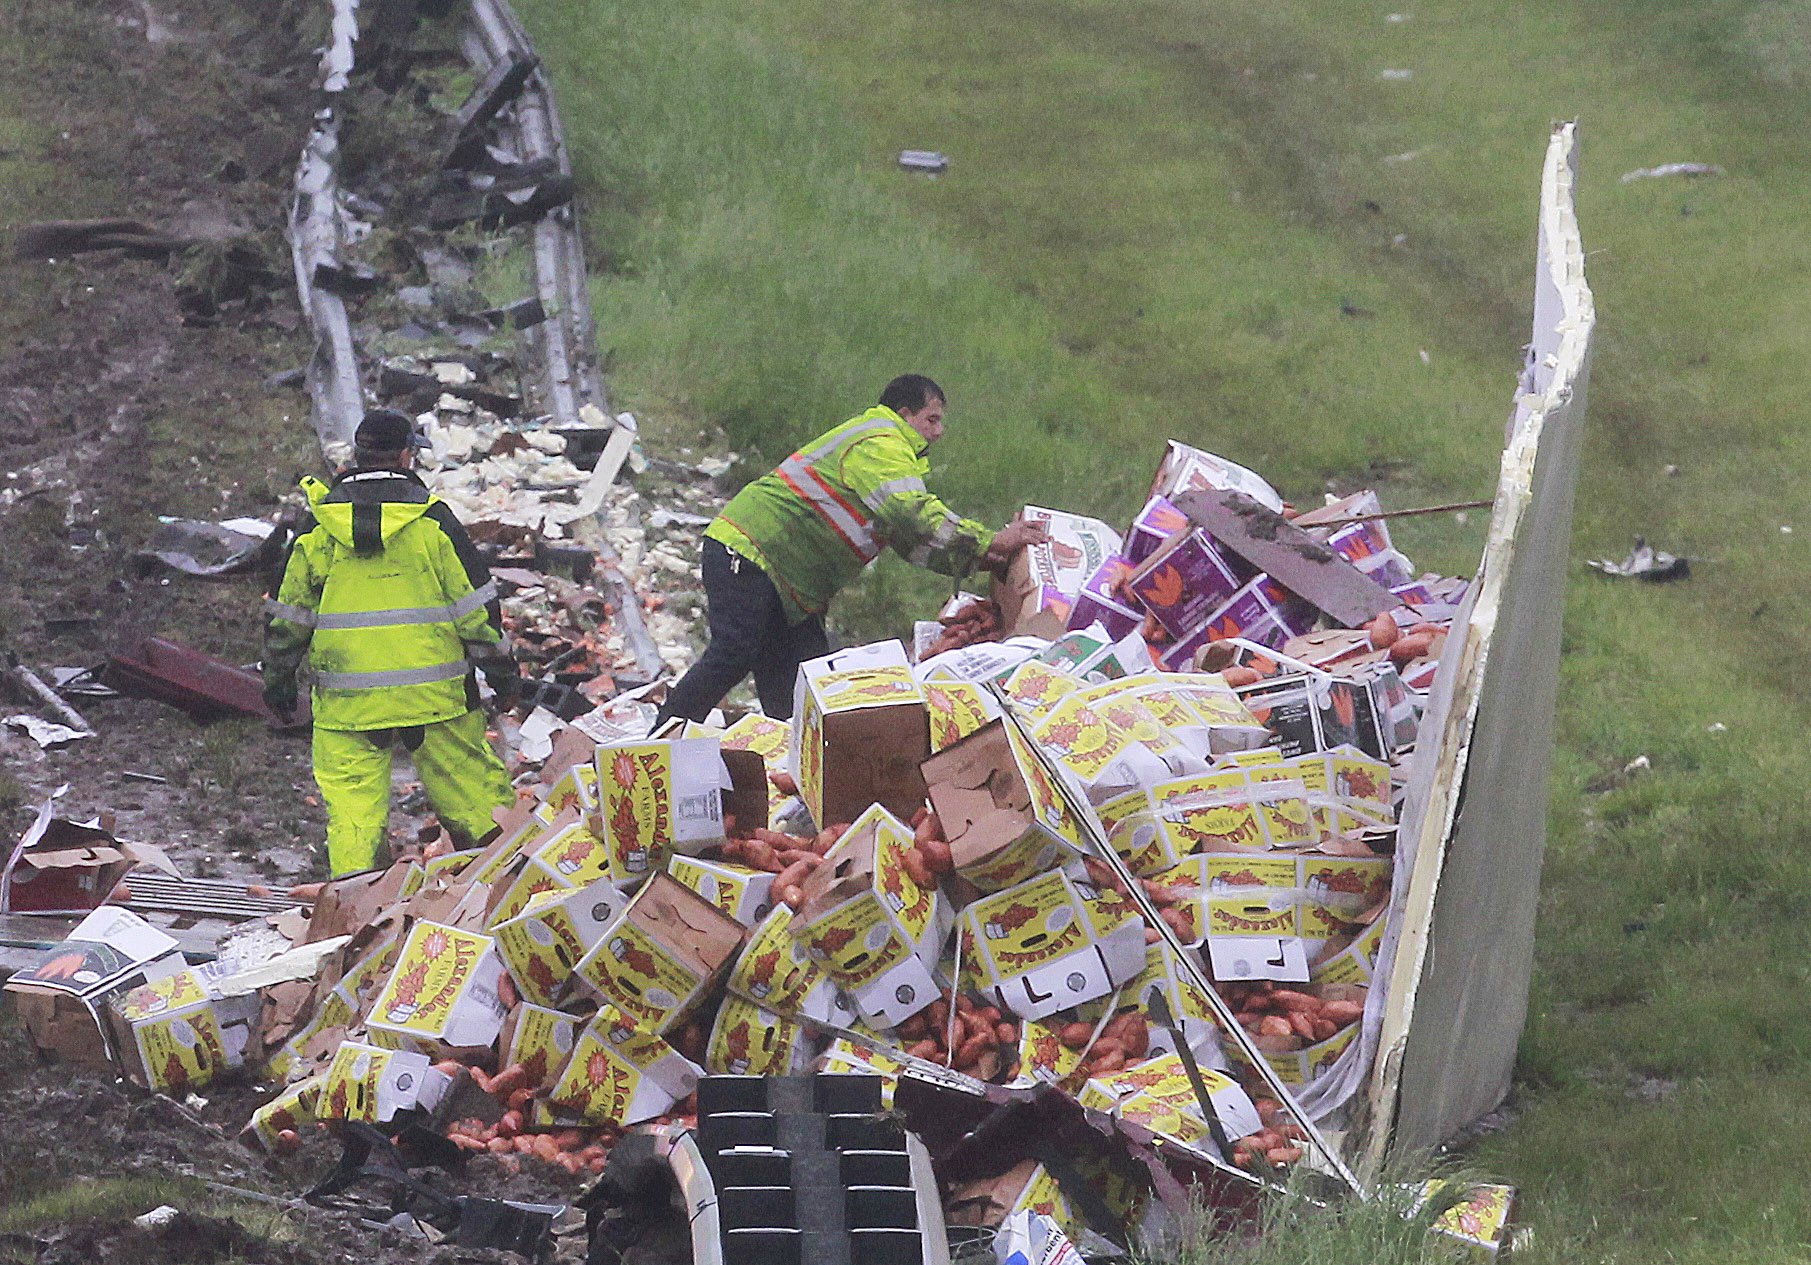 Truckload of sweet potatoes deliciously floods N.J. highway after tractor trailer overturns